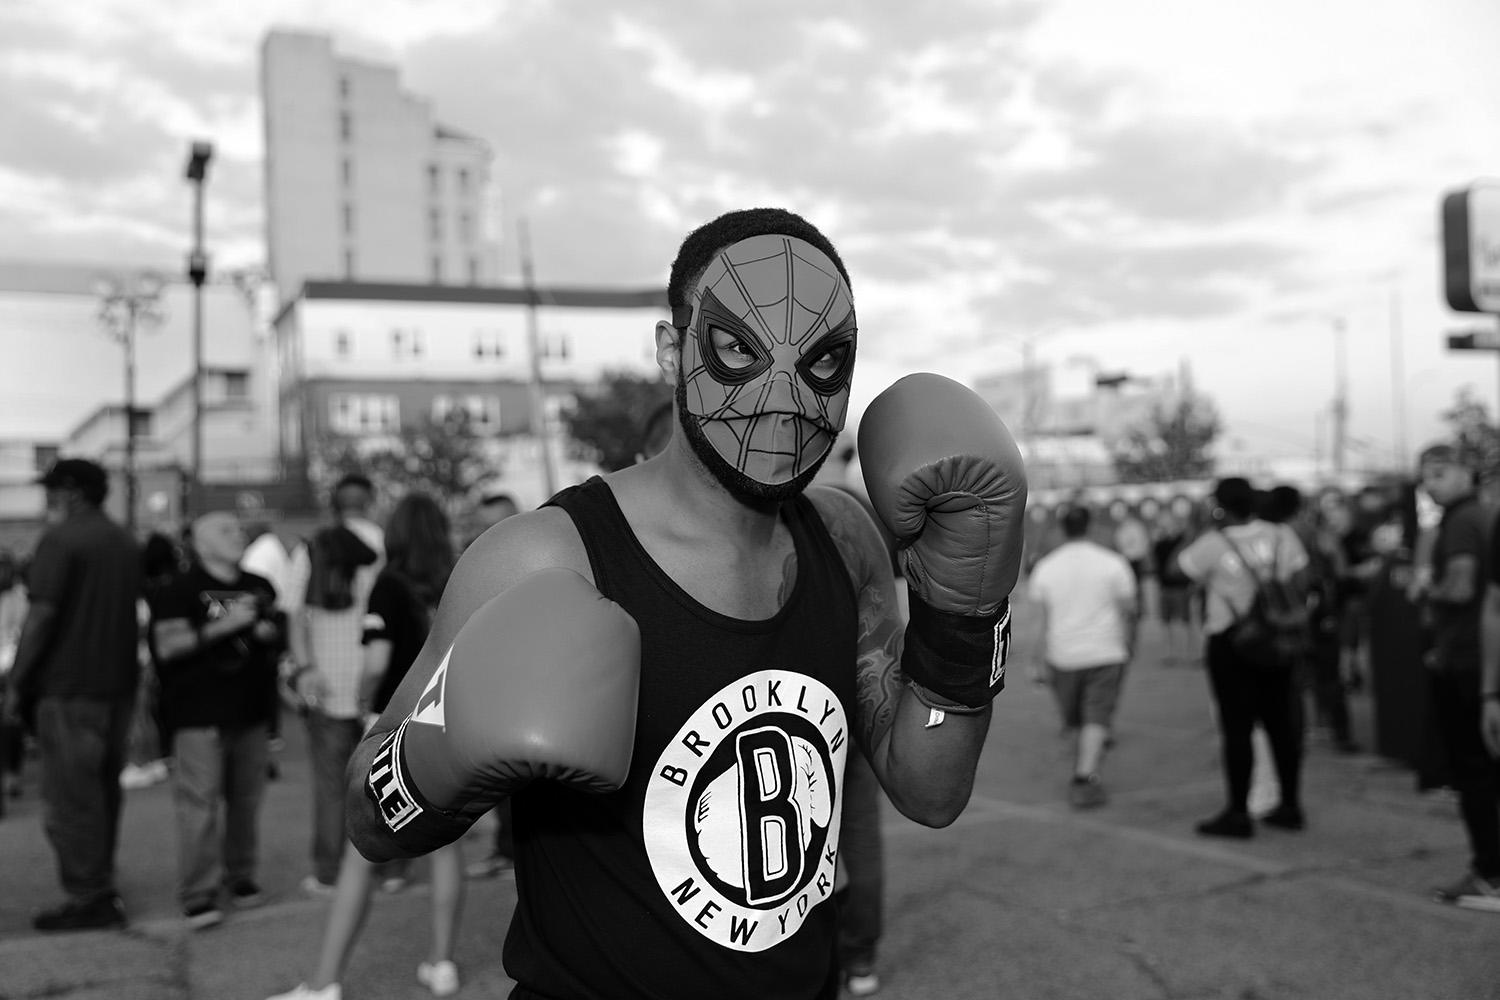 <p>An NYPD officer known as Spiderman poses before the Brooklyn Smoker in the parking lot of Gargiulo's Italian restaurant in Coney Island, Brooklyn, on Aug. 24, 2017. (Photo: Gordon Donovan/Yahoo News) </p>